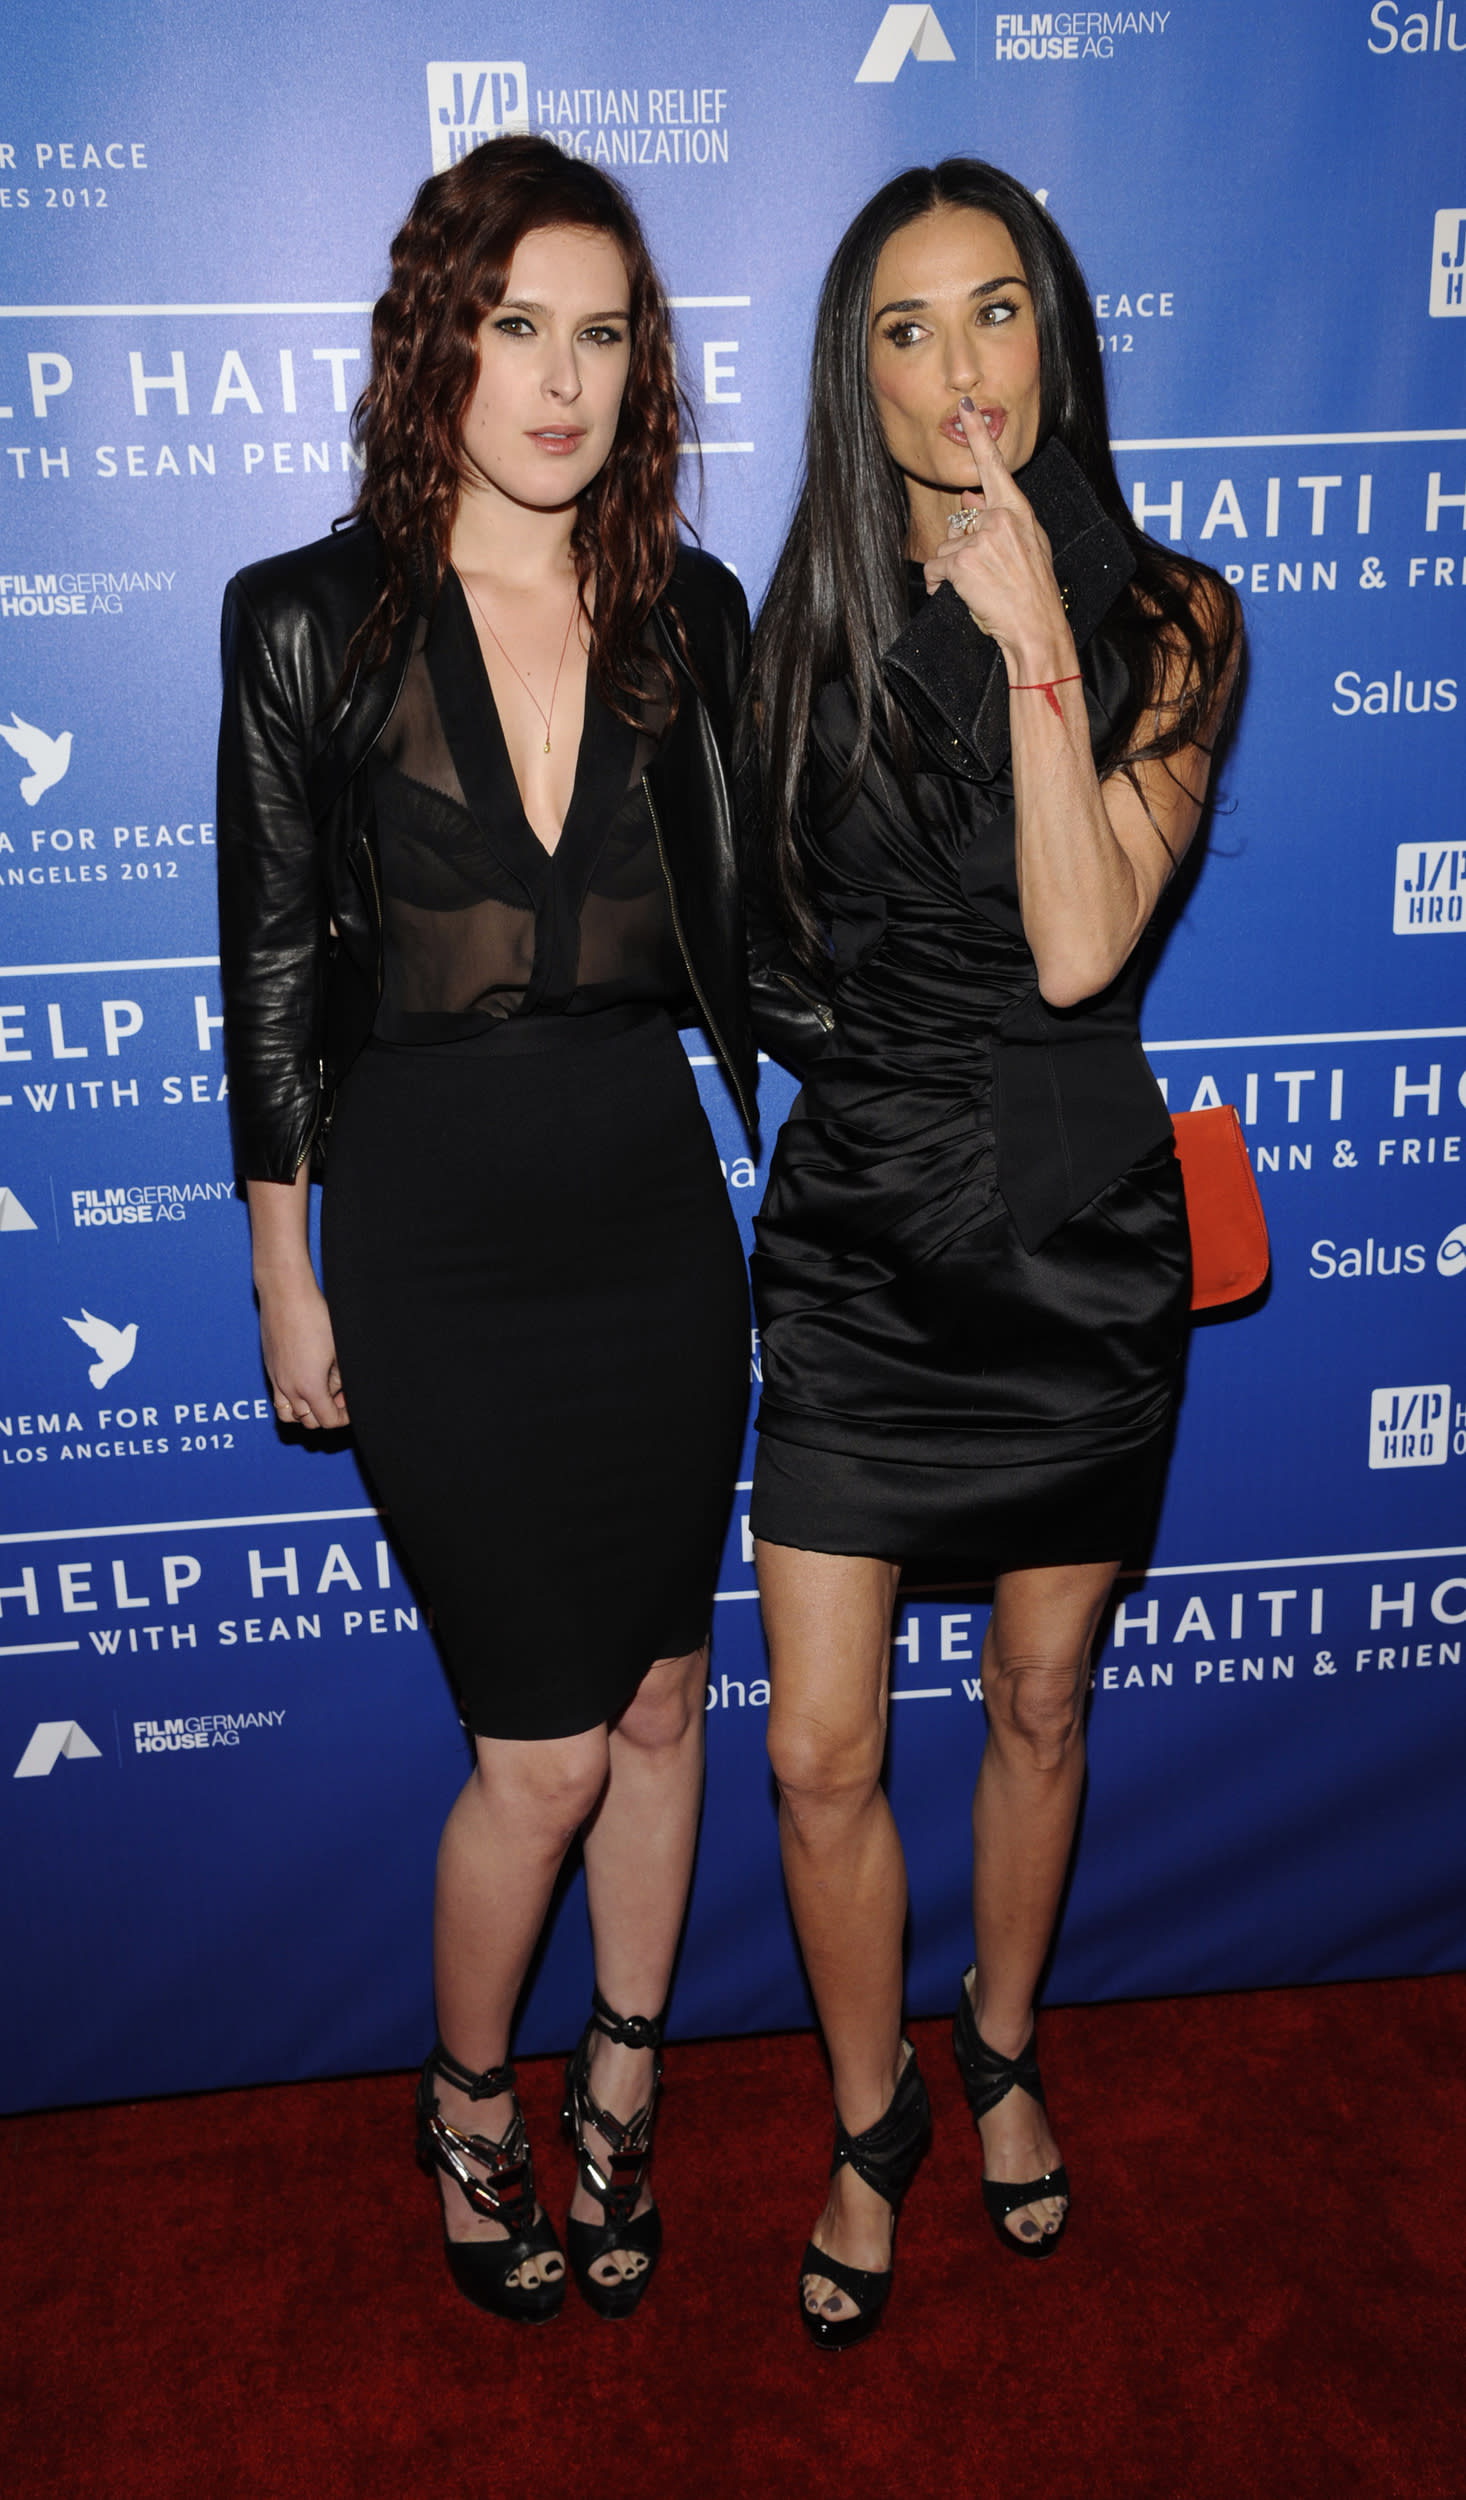 Actress Demi Moore (R) and her daughter Rumer Willis attend the Cinema for Peace event benefiting the J/P Haitian Relief Organization, in Los Angeles January 14, 2012. REUTERS/Phil McCarten (UNITED STATES - Tags: ENTERTAINMENT)